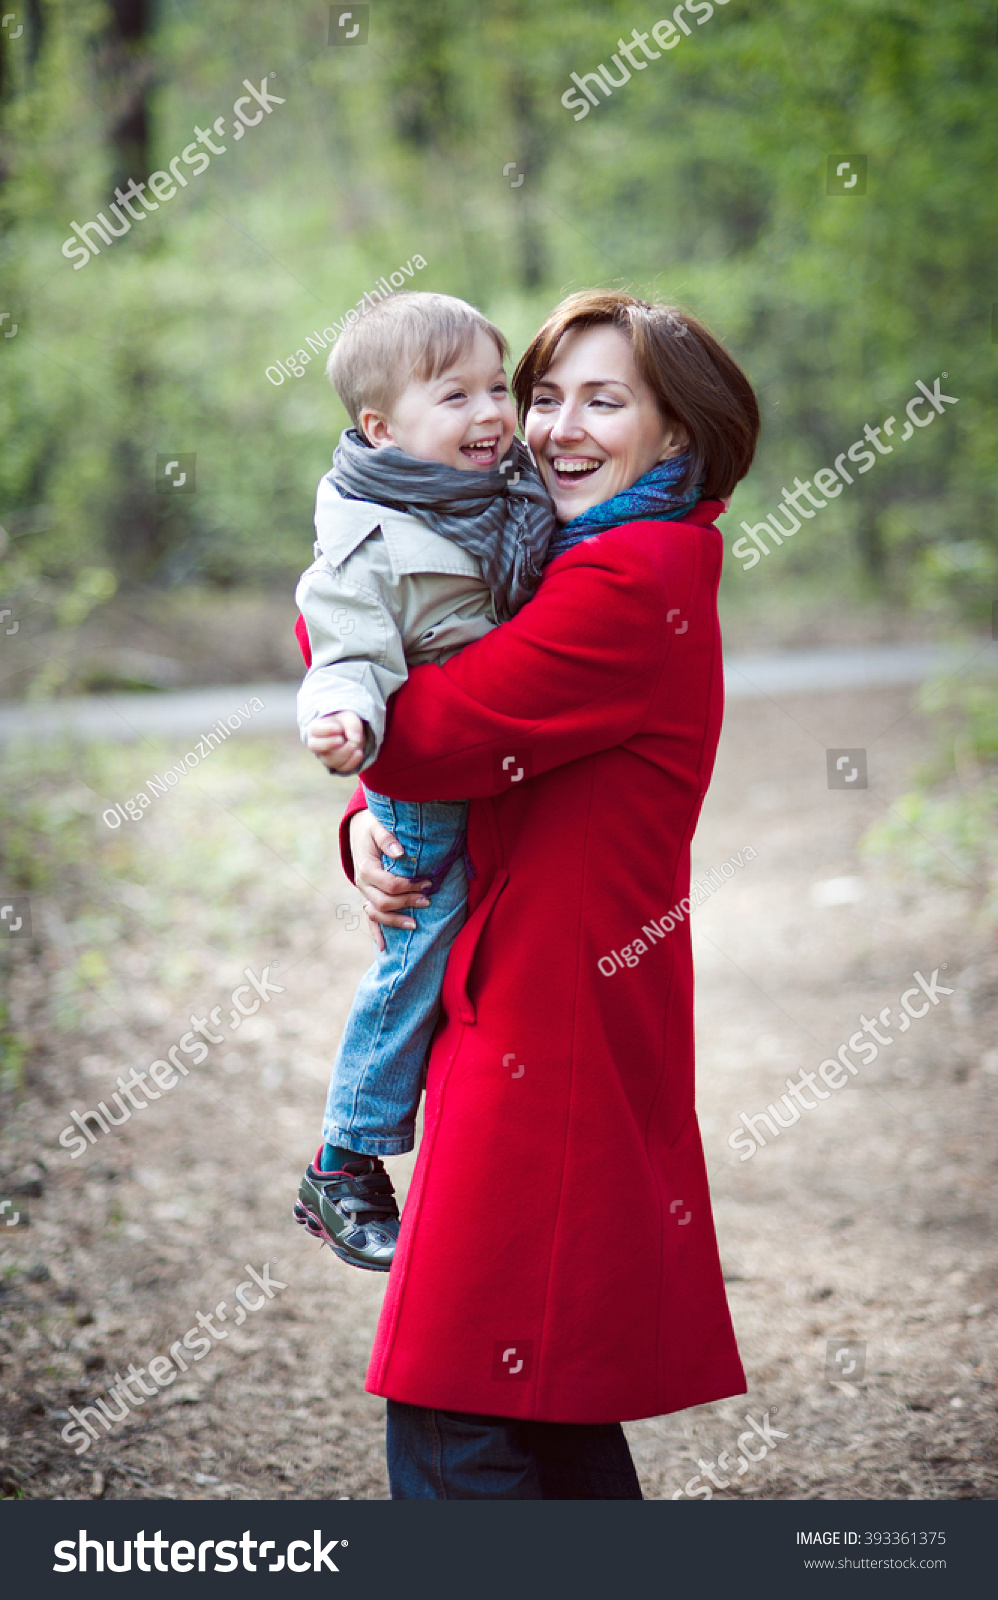 Mom In The Red Coat Is Holding His Son They Laugh And Play